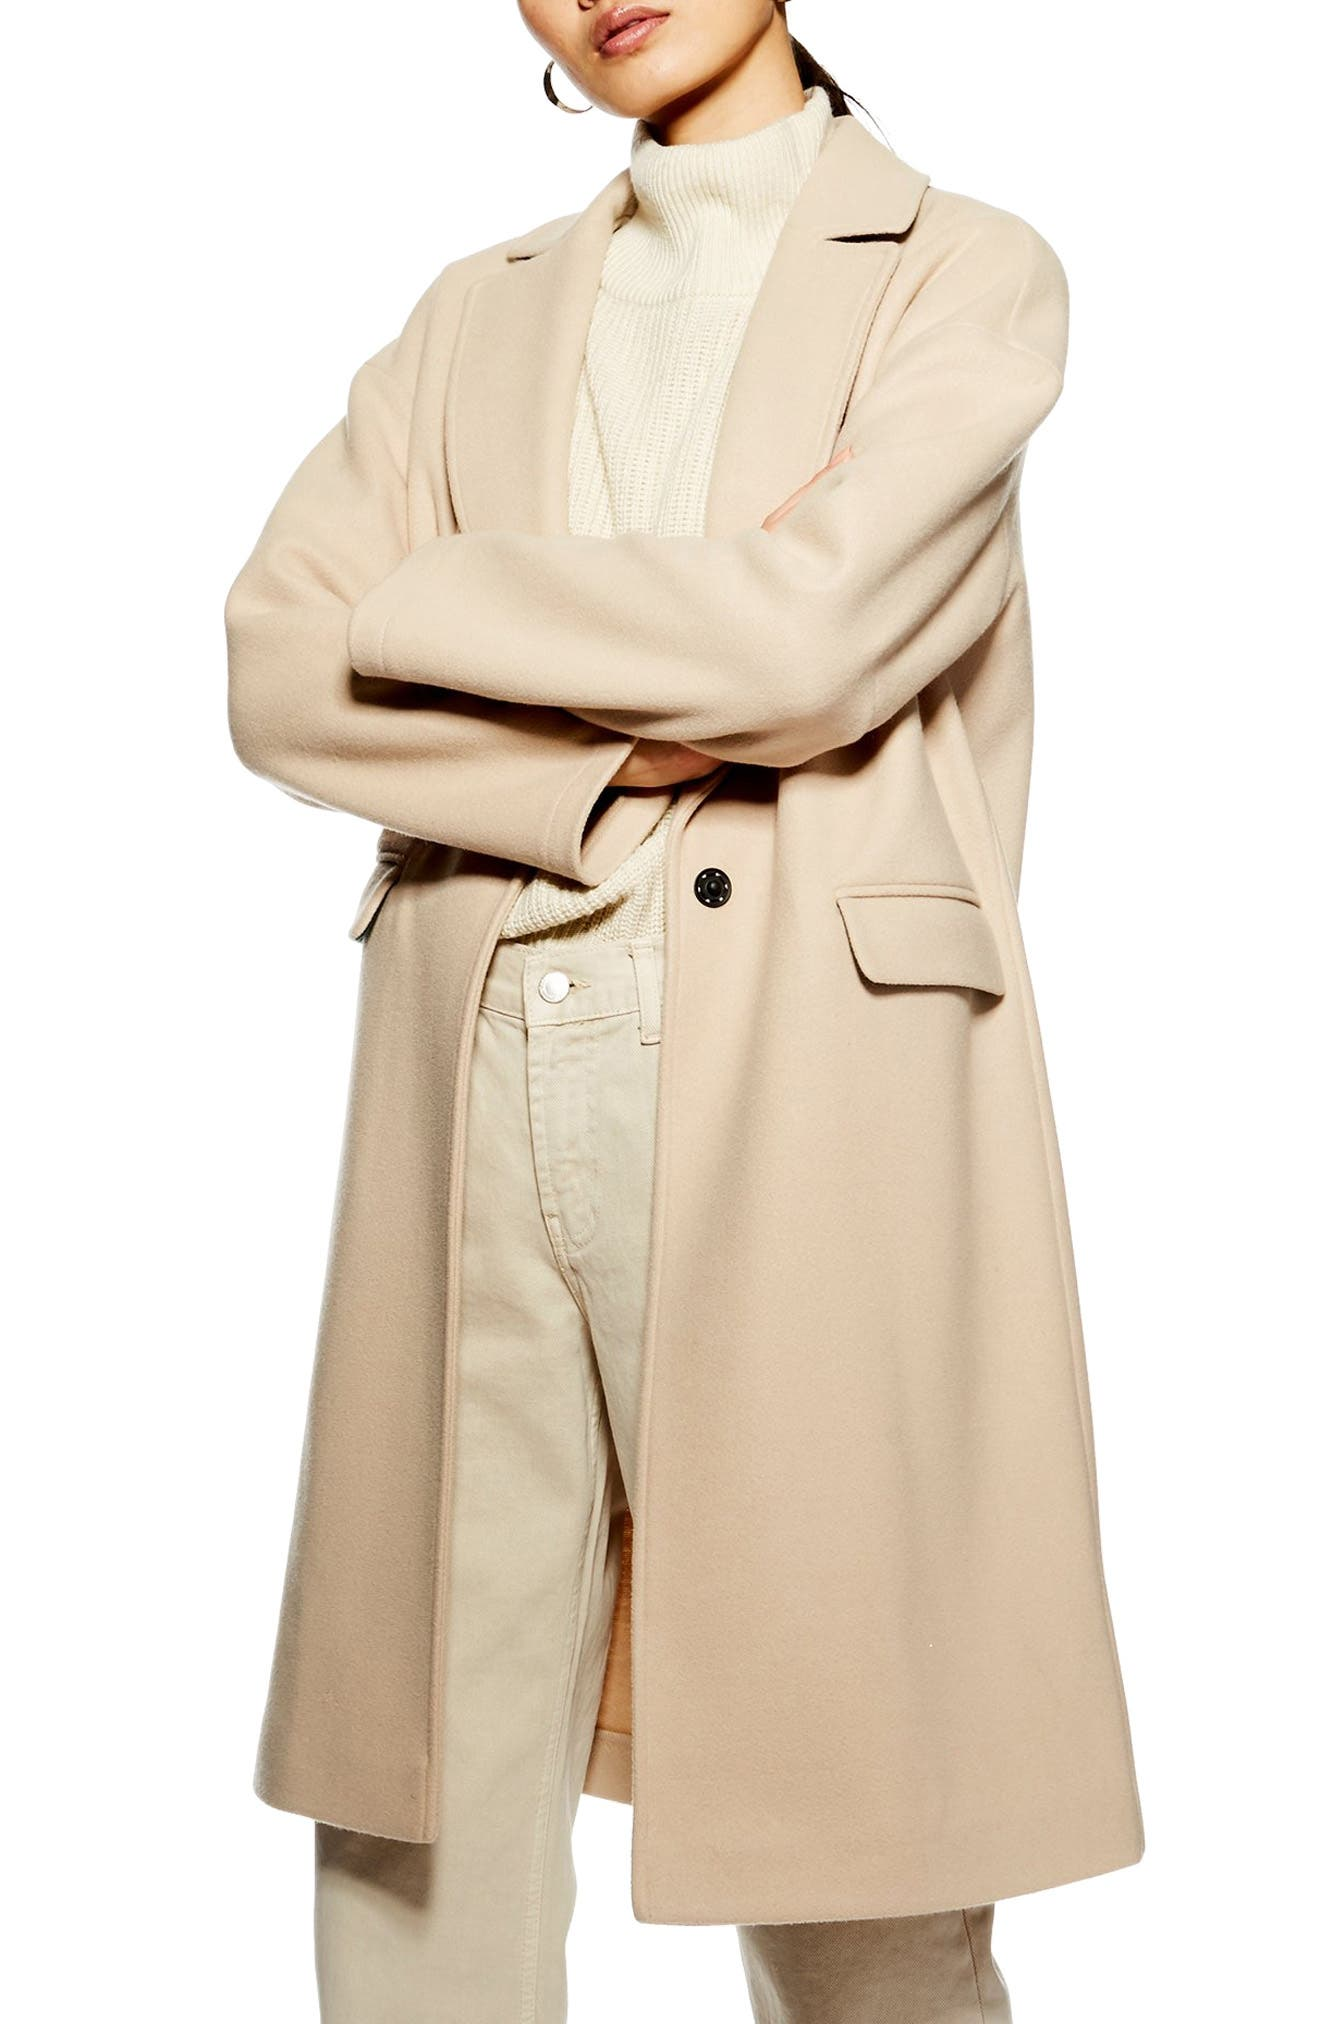 Lily Knit Back Midi Coat,                             Main thumbnail 1, color,                             STONE